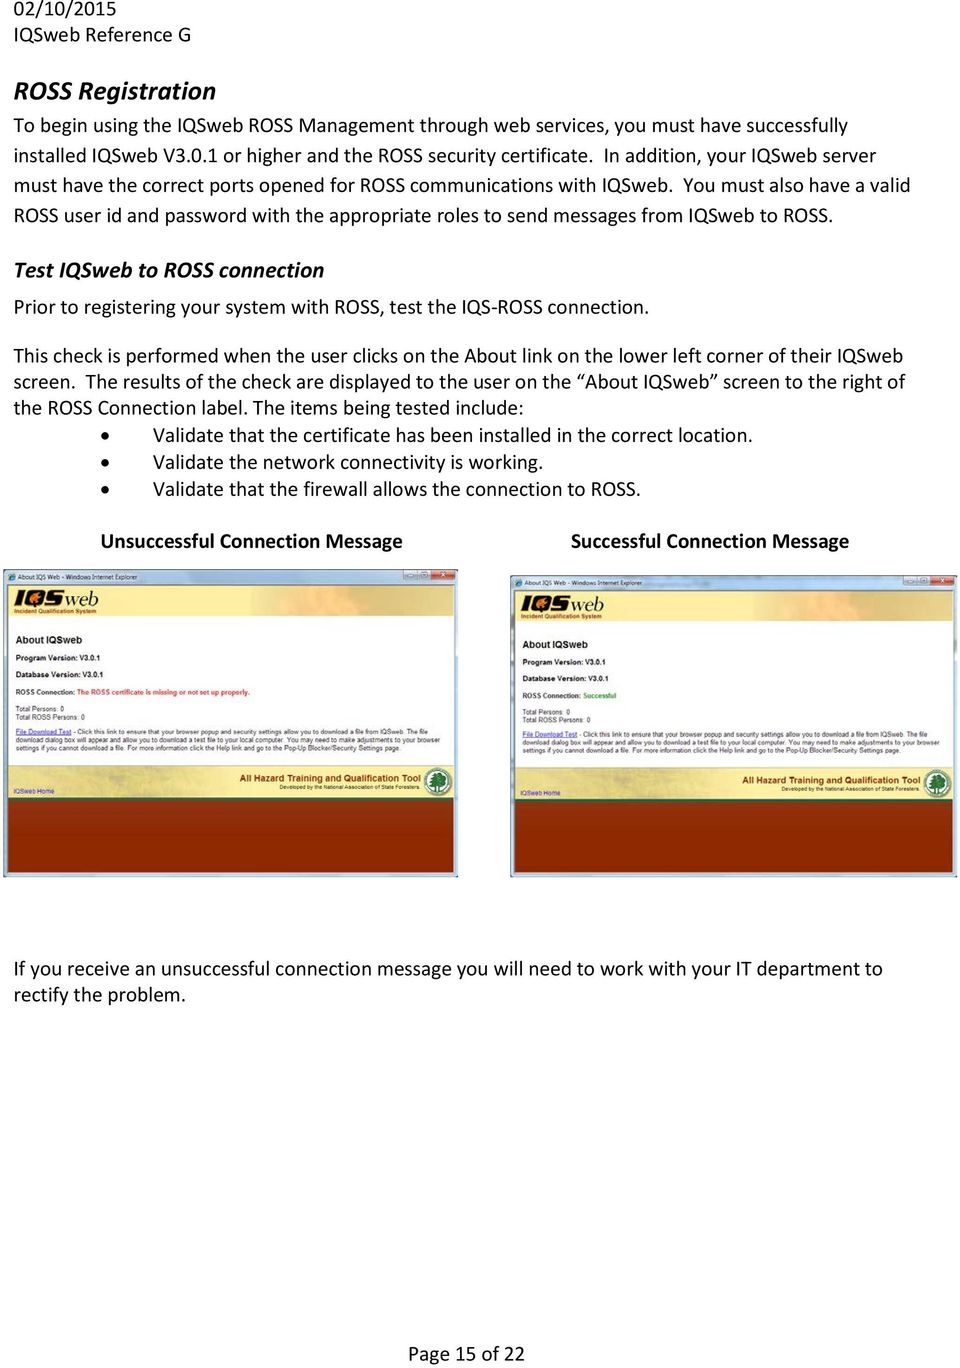 You must also have a valid ROSS user id and password with the appropriate roles to send messages from IQSweb to ROSS.